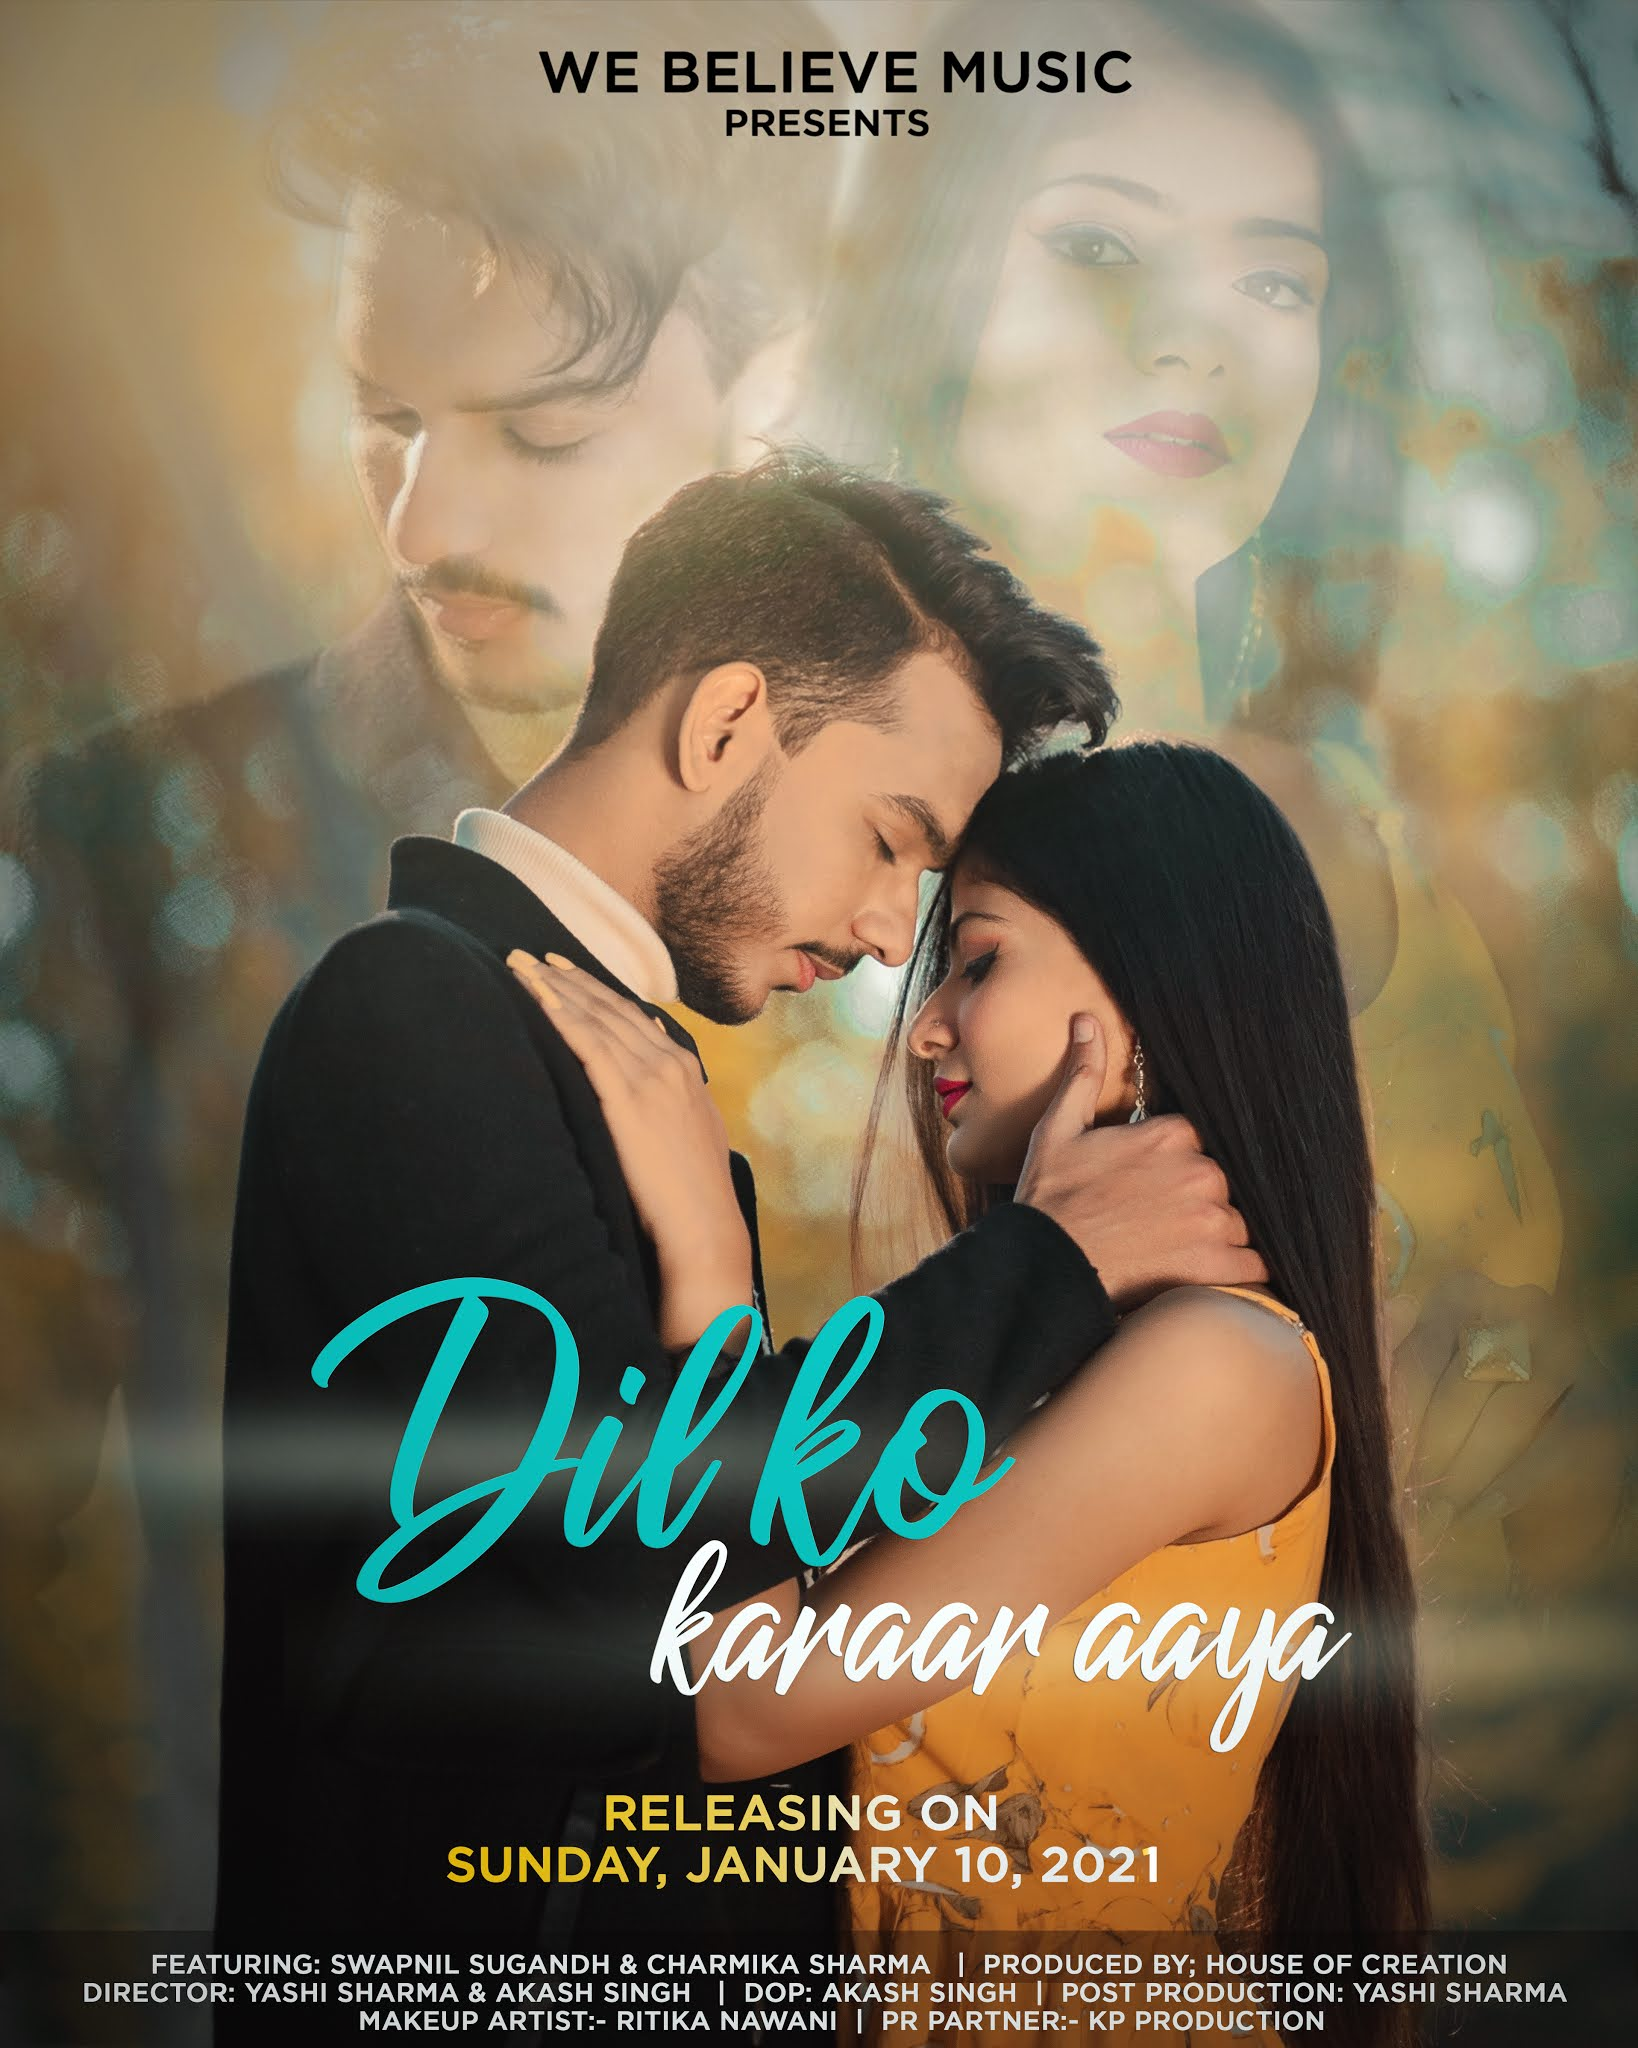 press-release-the-romantic-cover-song-Dil-Ko-Karar-Aaya-will-release-on-January-10-Swapnil-Sugandh-and-Charmika-Sharma-will-be-seen-in-Lead-Artist